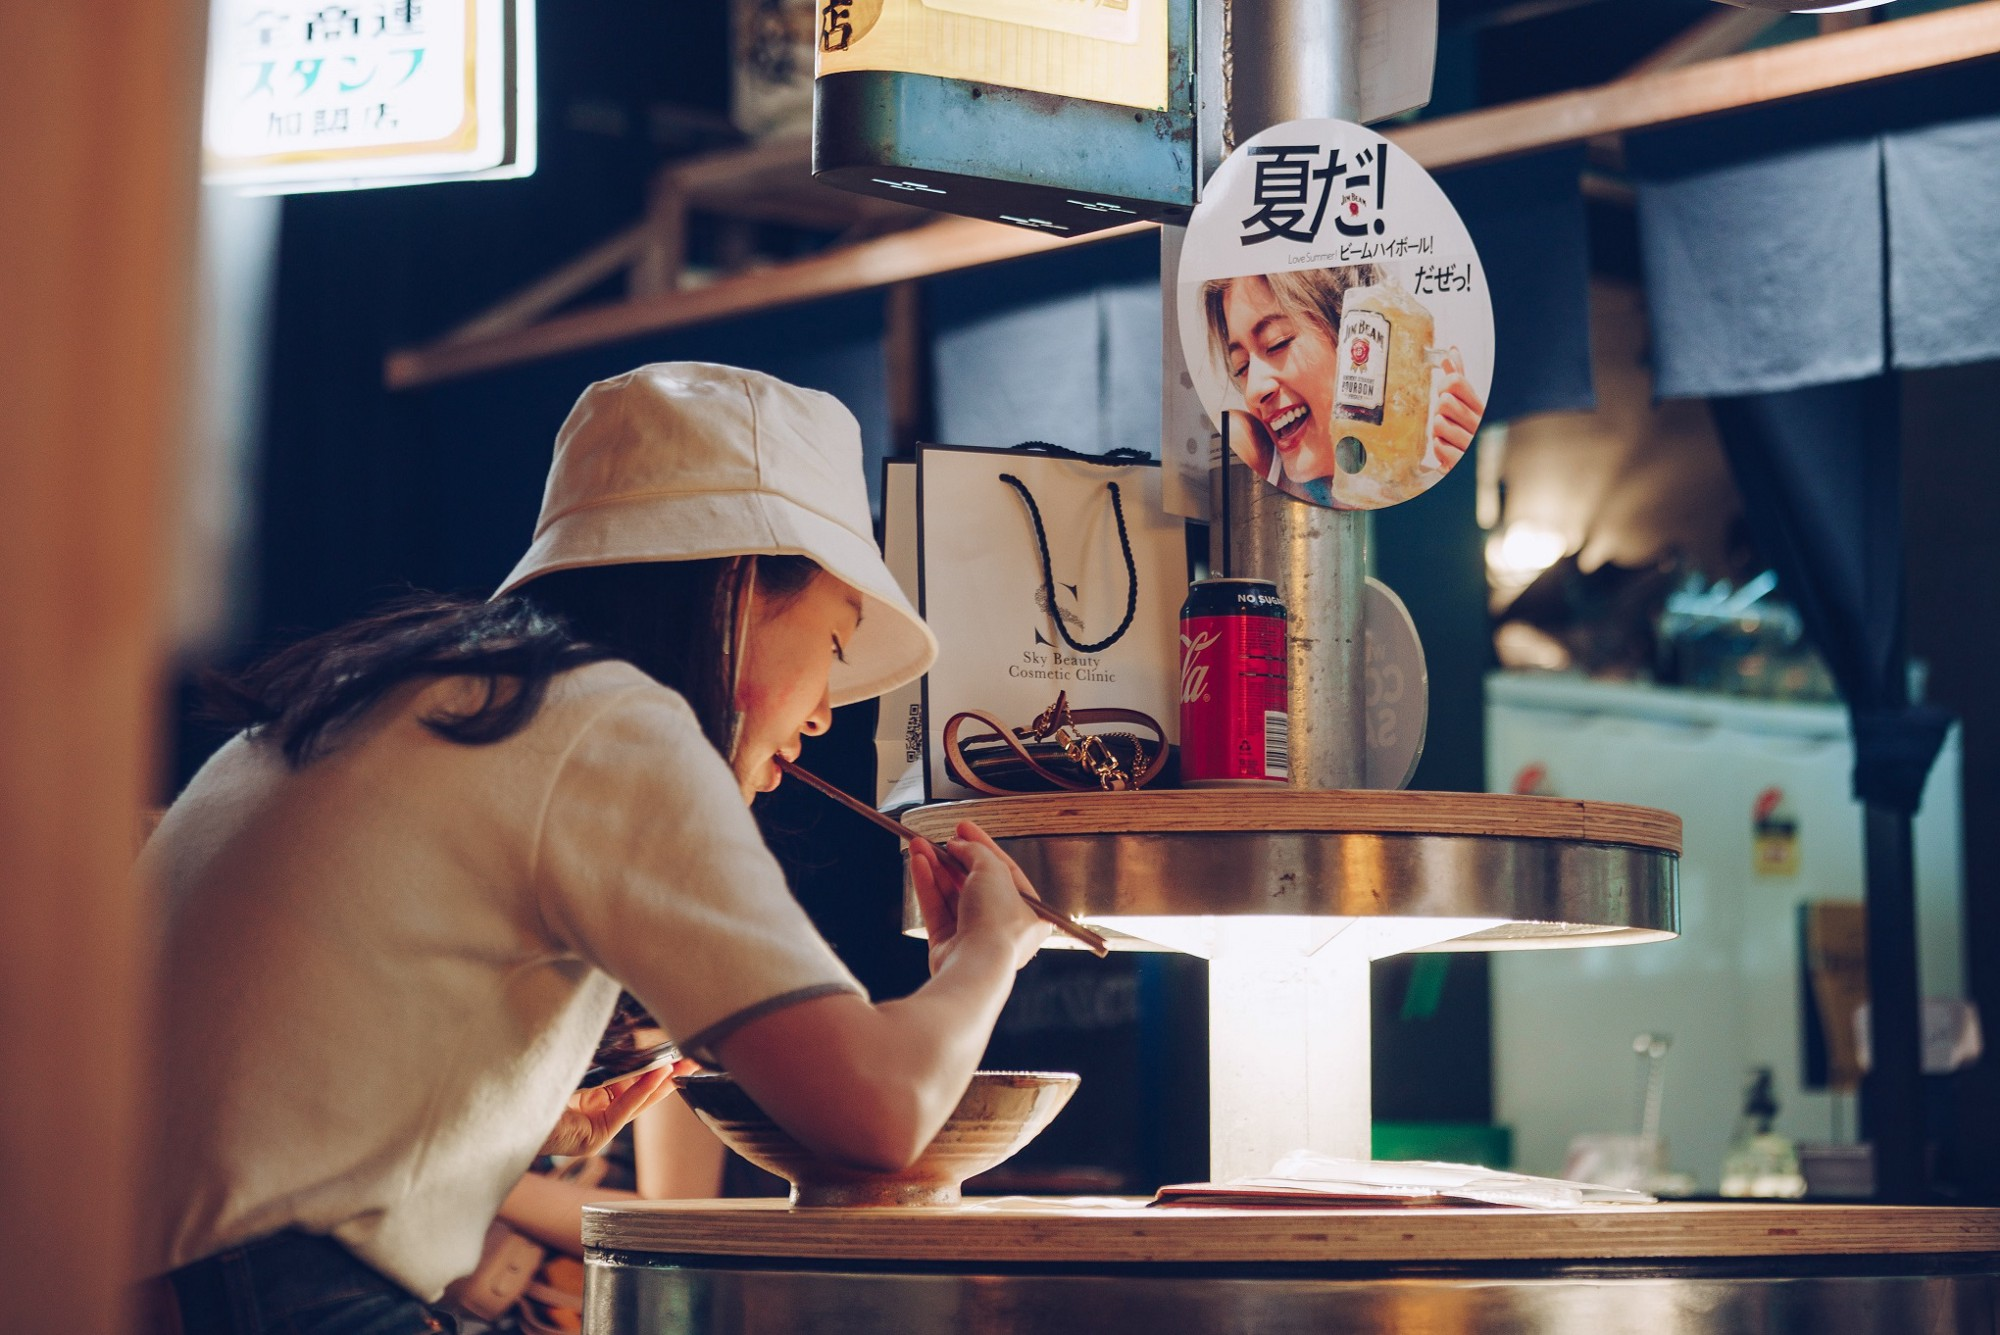 Japanese woman eating in a restaurant